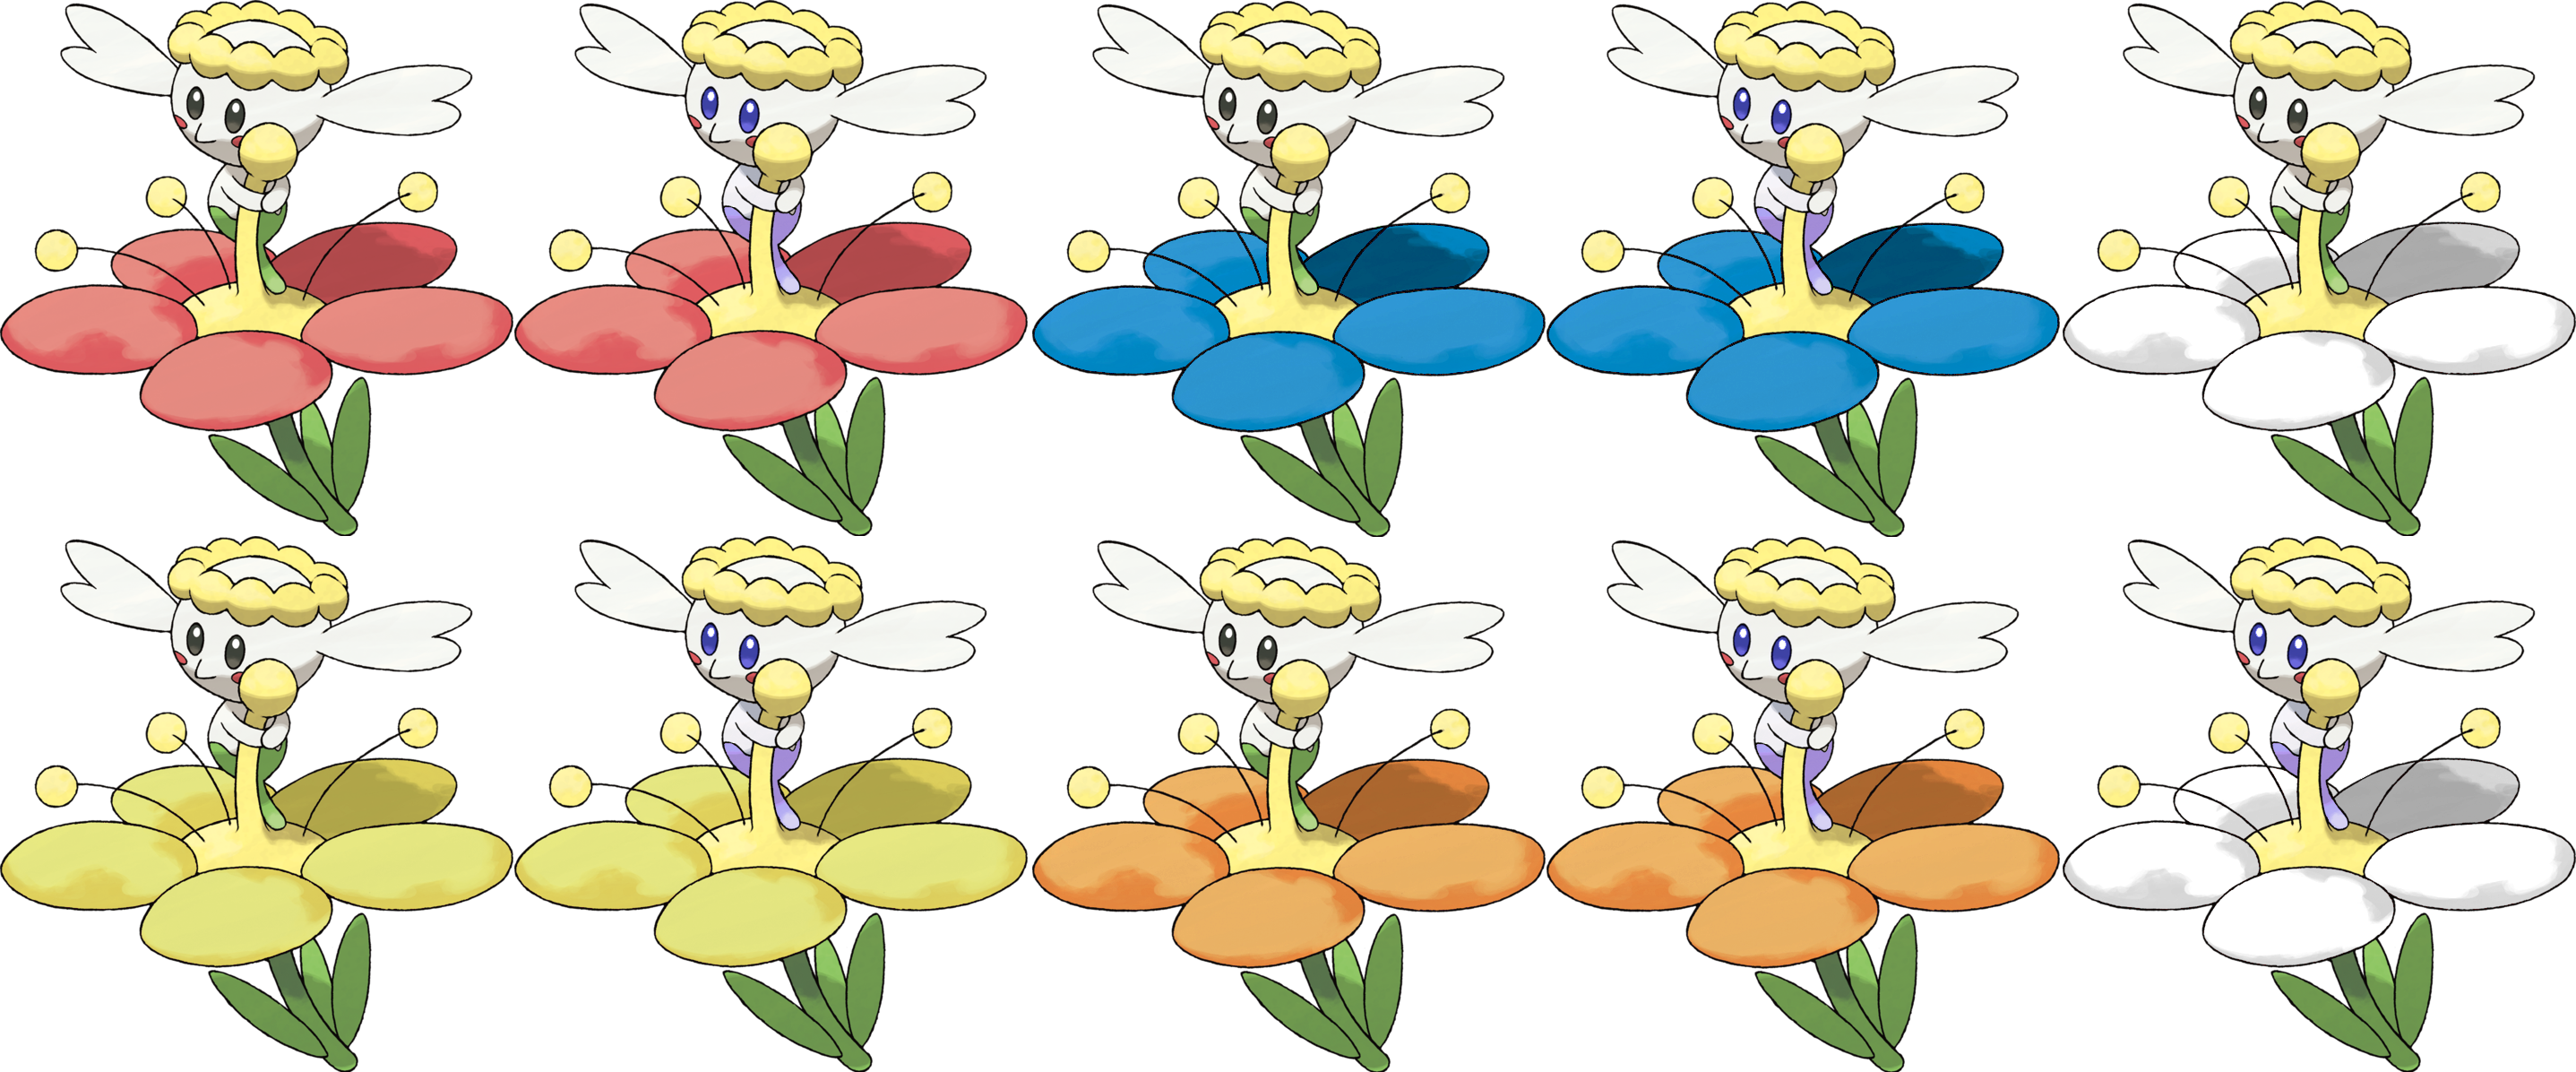 flabebe pokemon shiny - HD 2875×1196